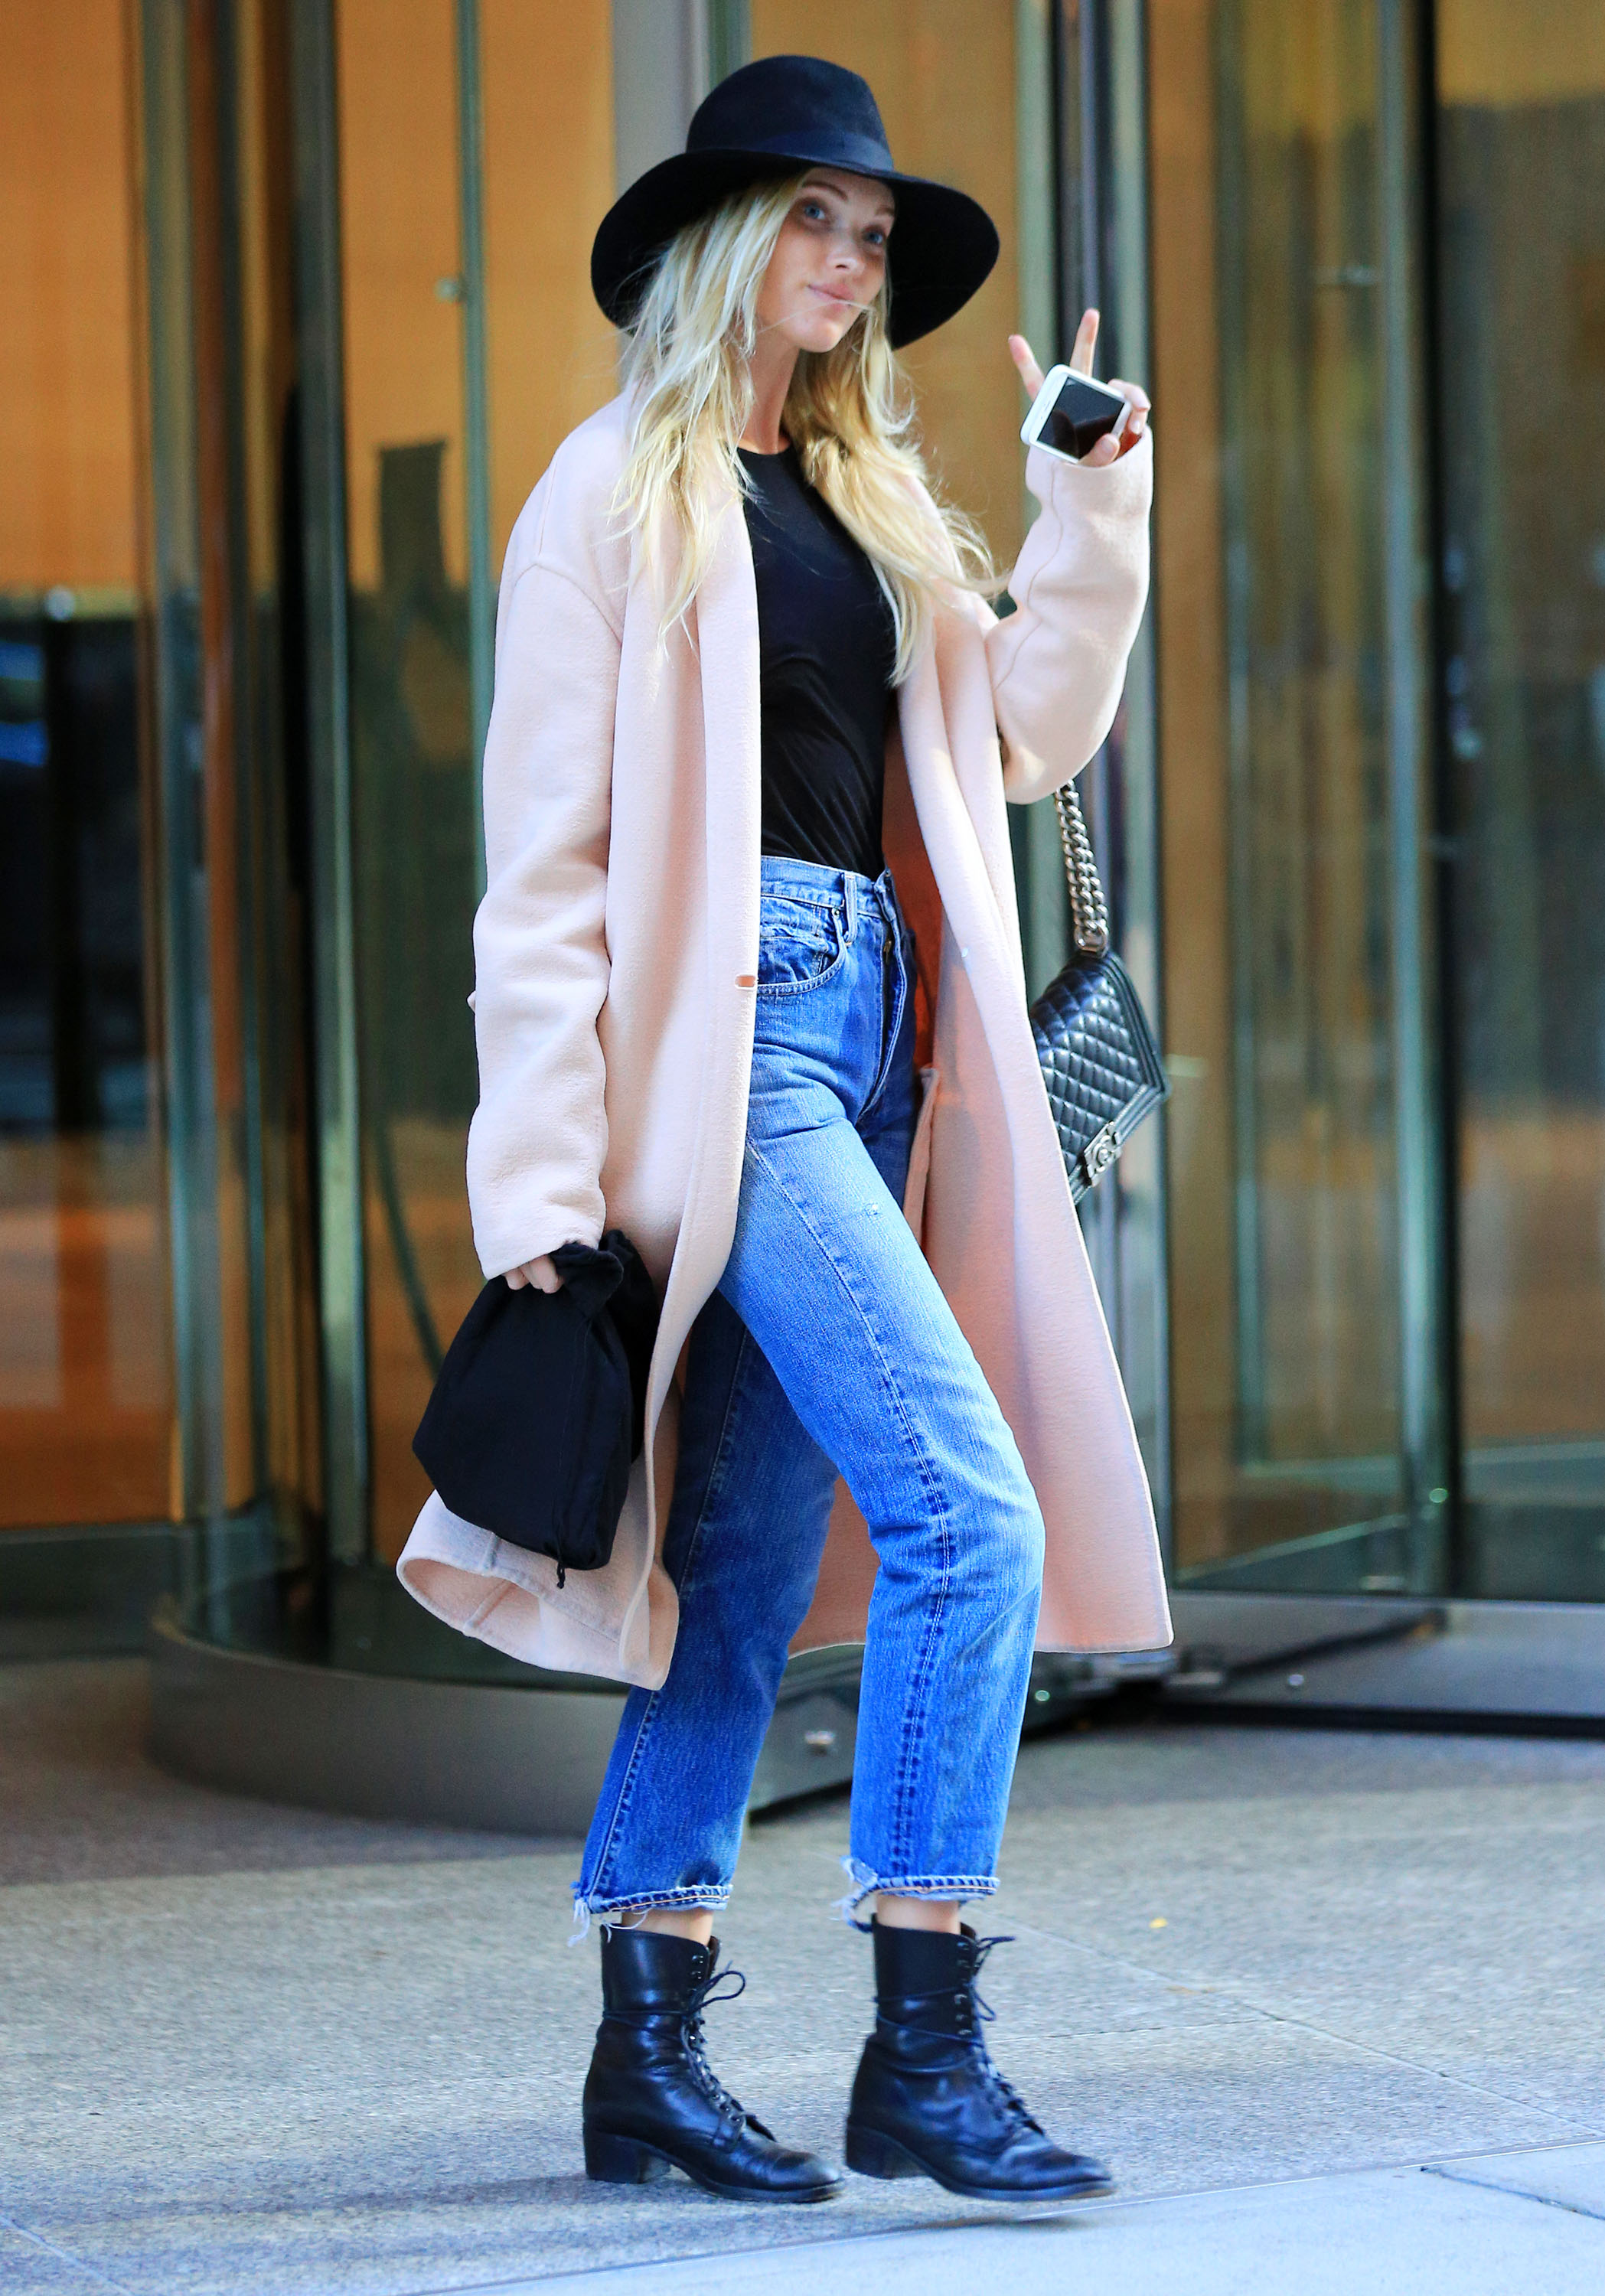 Braless Pics Of Elsa Hosk